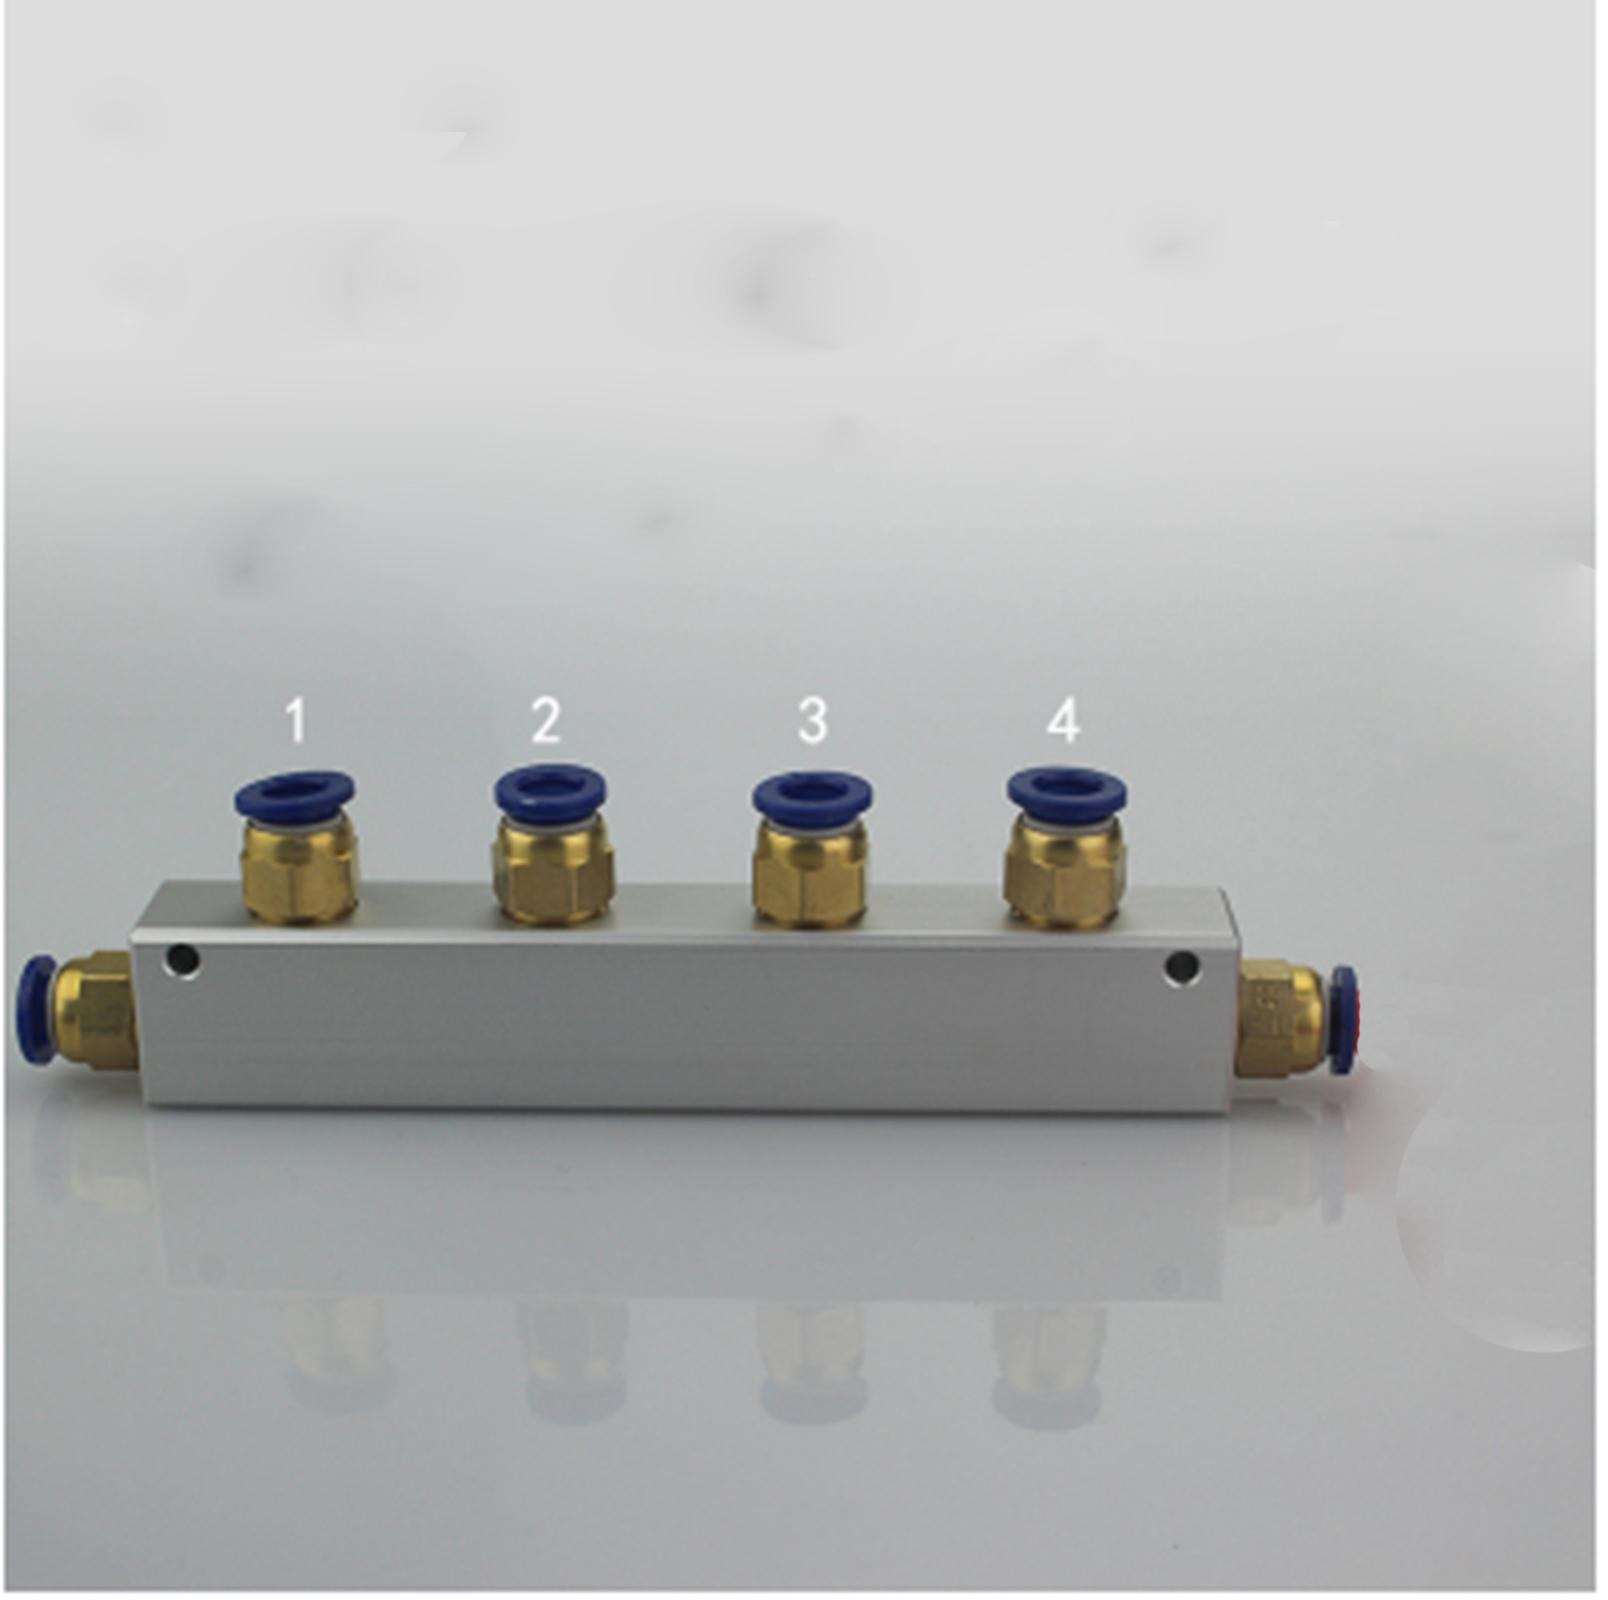 Hot Sale A Kit Push Fit 8mm 4 Way Pneumatic Air Manifold Block Toslink Optical Switch Splitter With Couplers